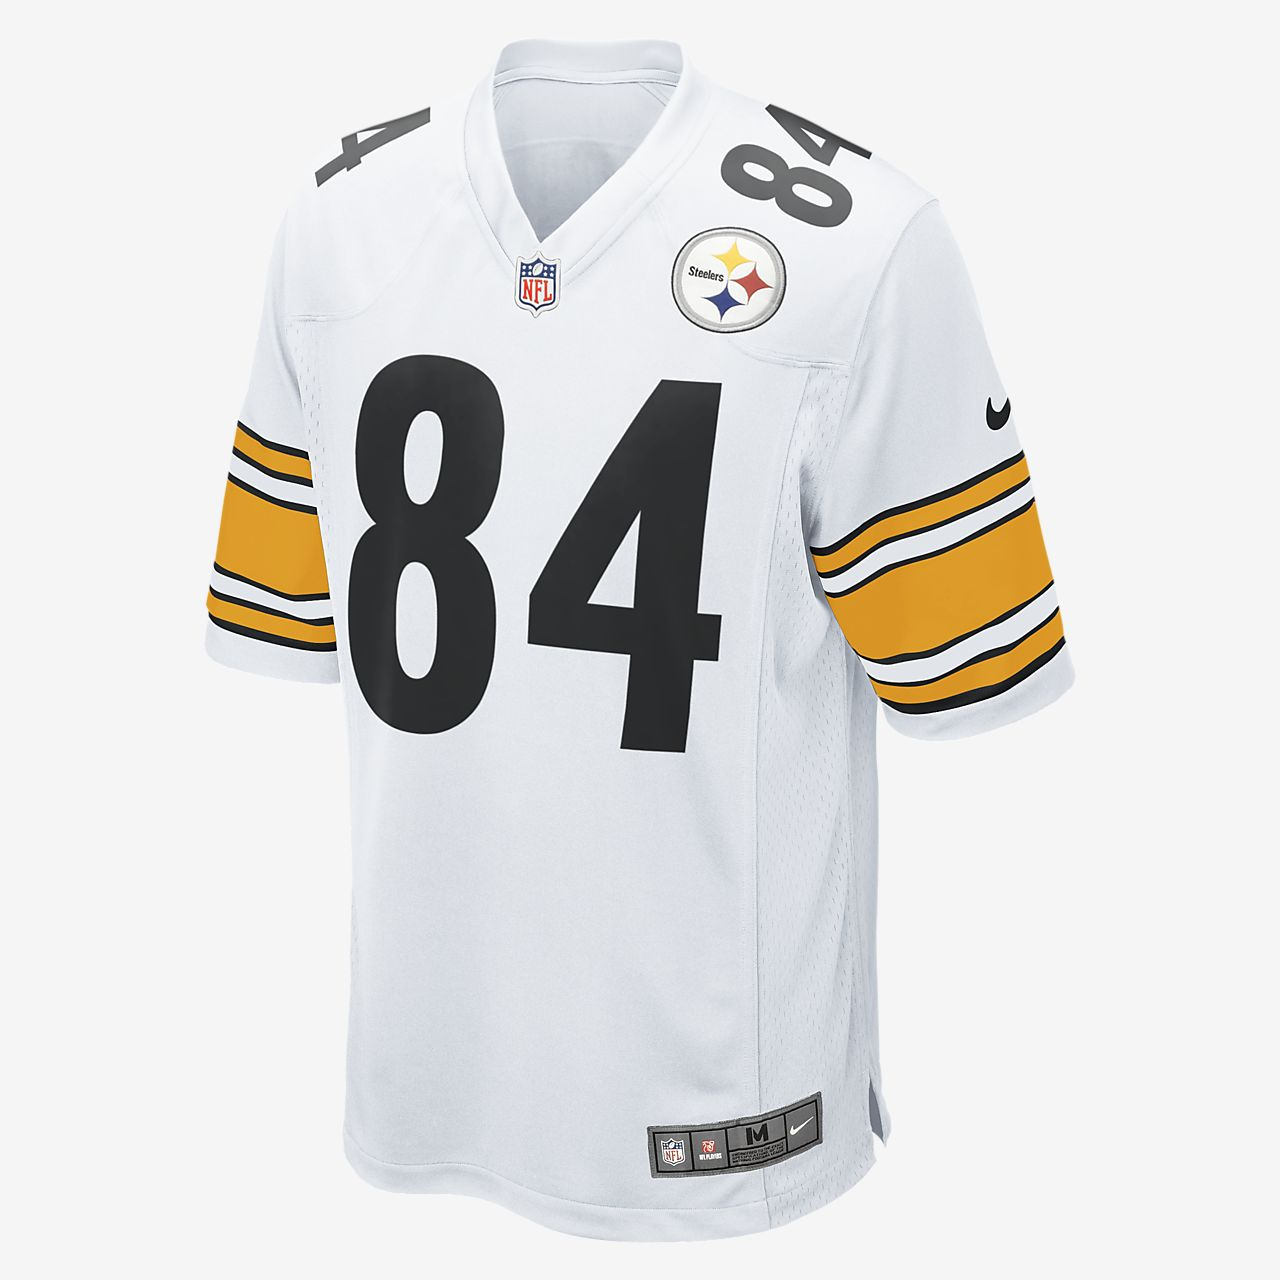 Мужское джерси для американского футбола для игры на выезде NFL Pittsburgh Steelers Game Jersey (Antonio Brown)